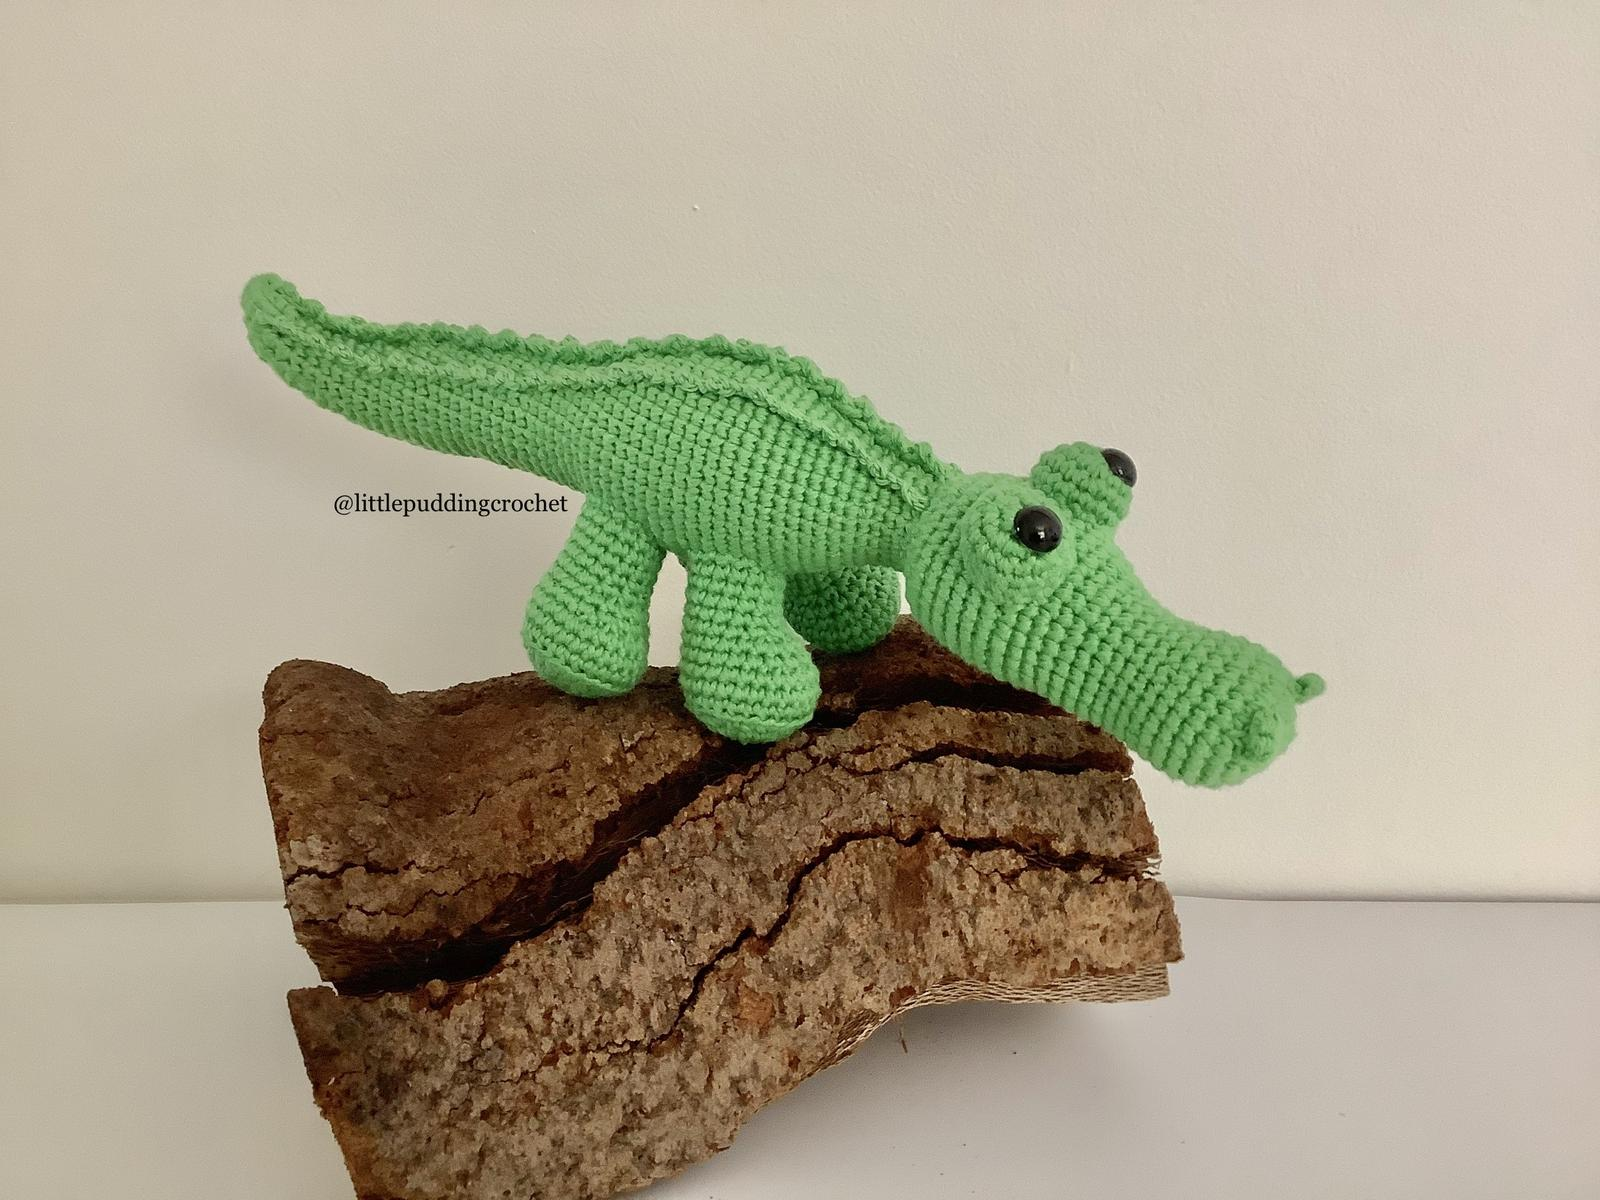 Morphle the Crocodile